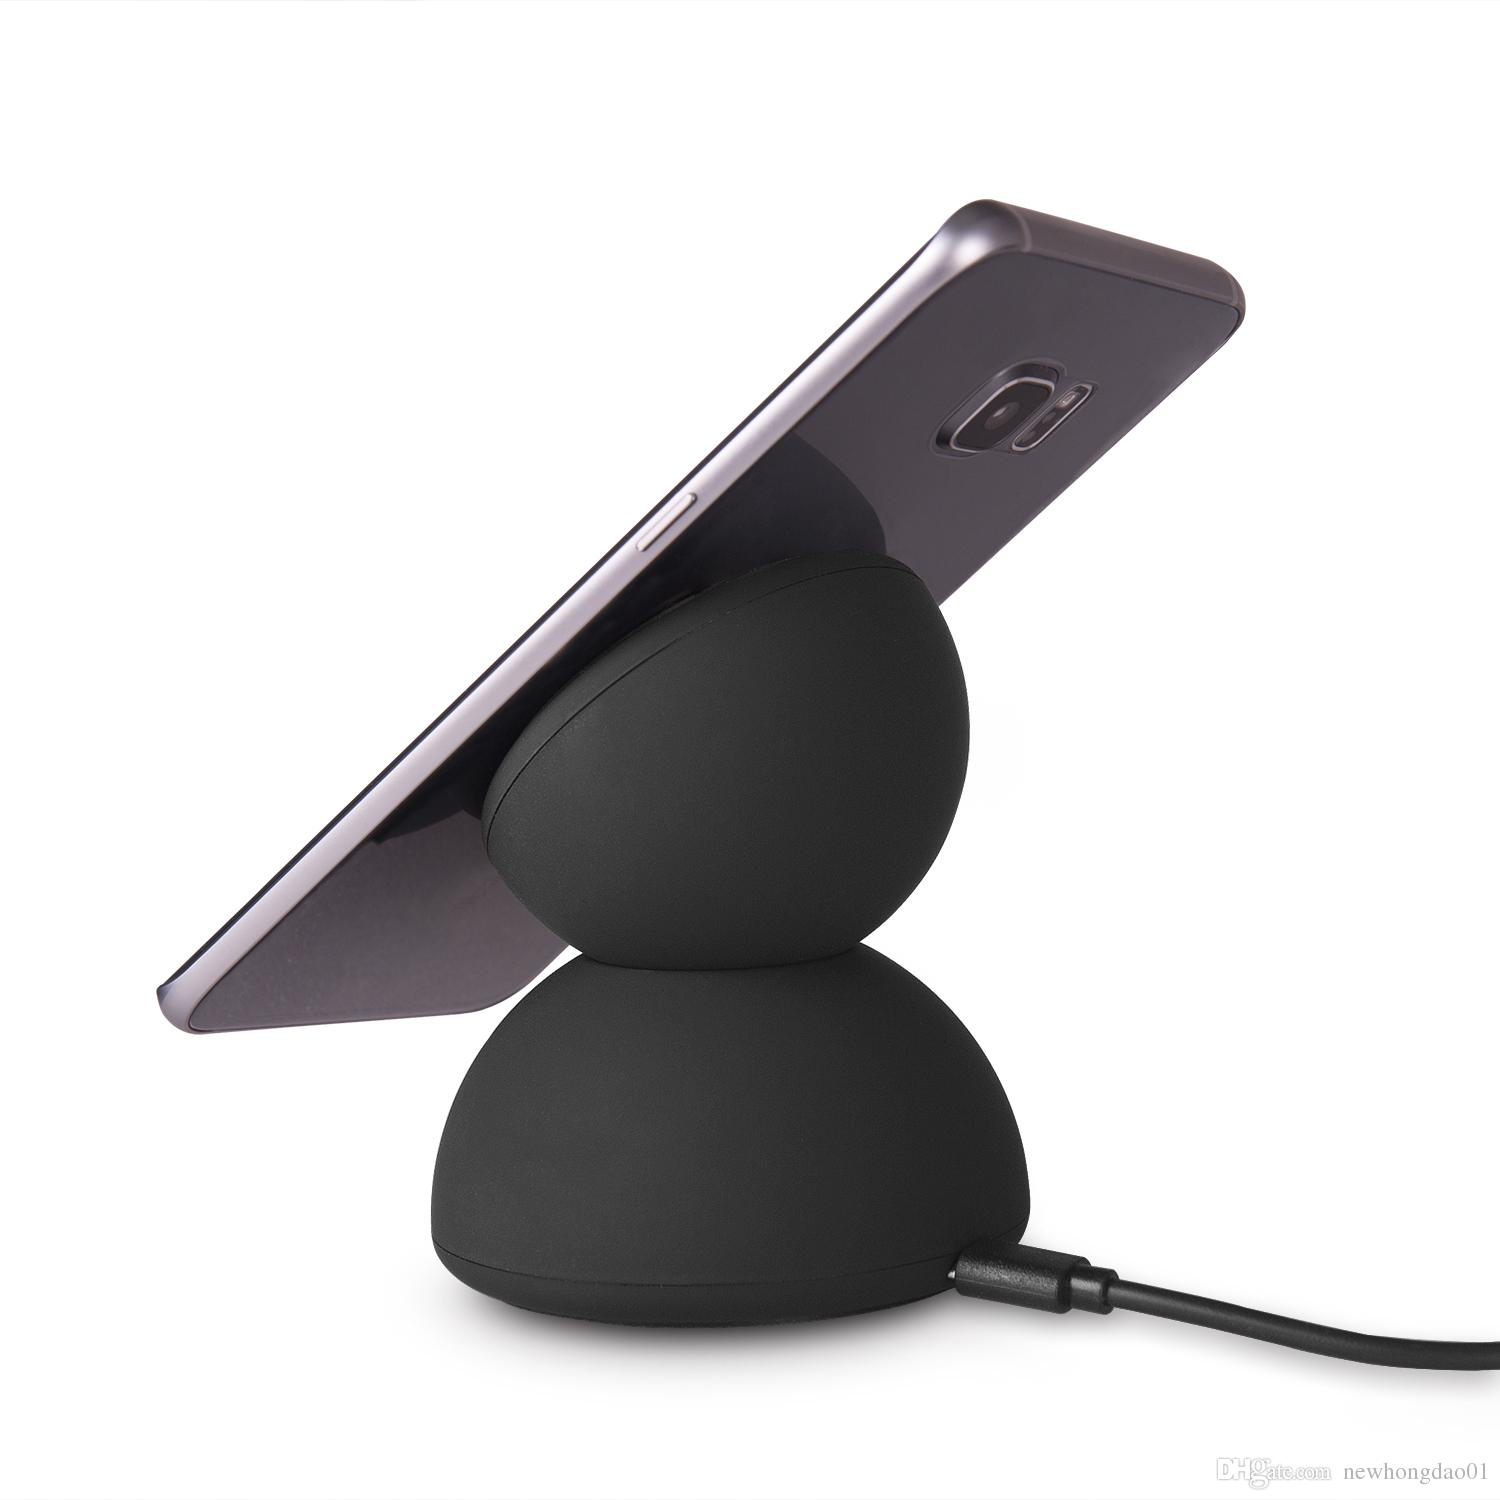 10W QI fast Charger Wireless Charging stand mobile phone holder pad for Samsung Galaxy S8 S7,S7 edge,S6 Edge Plus,Note 5